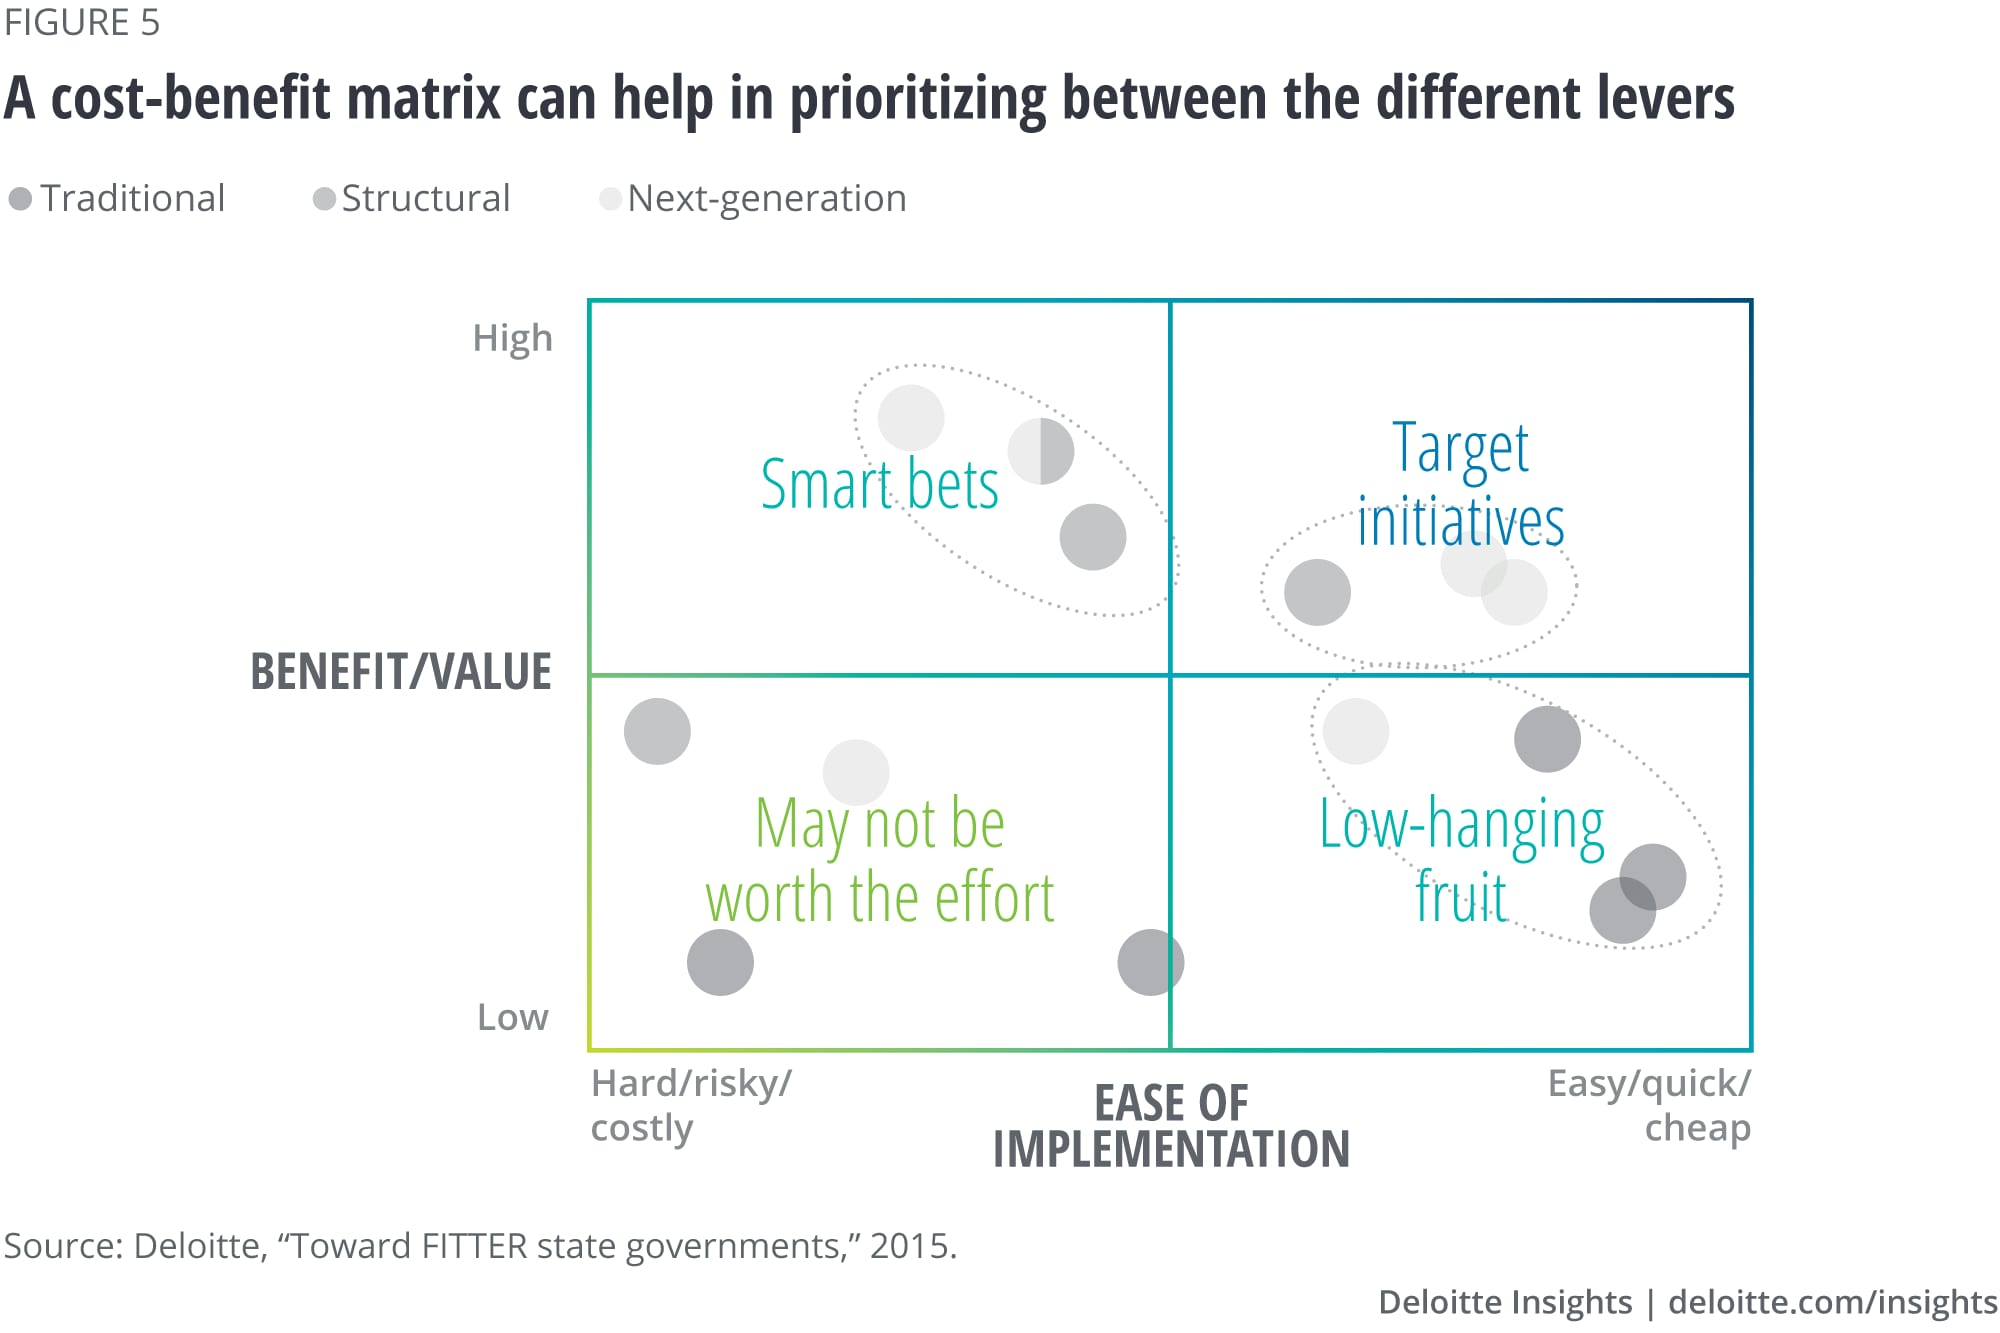 A cost-benefit matrix can help in prioritizing between different approaches